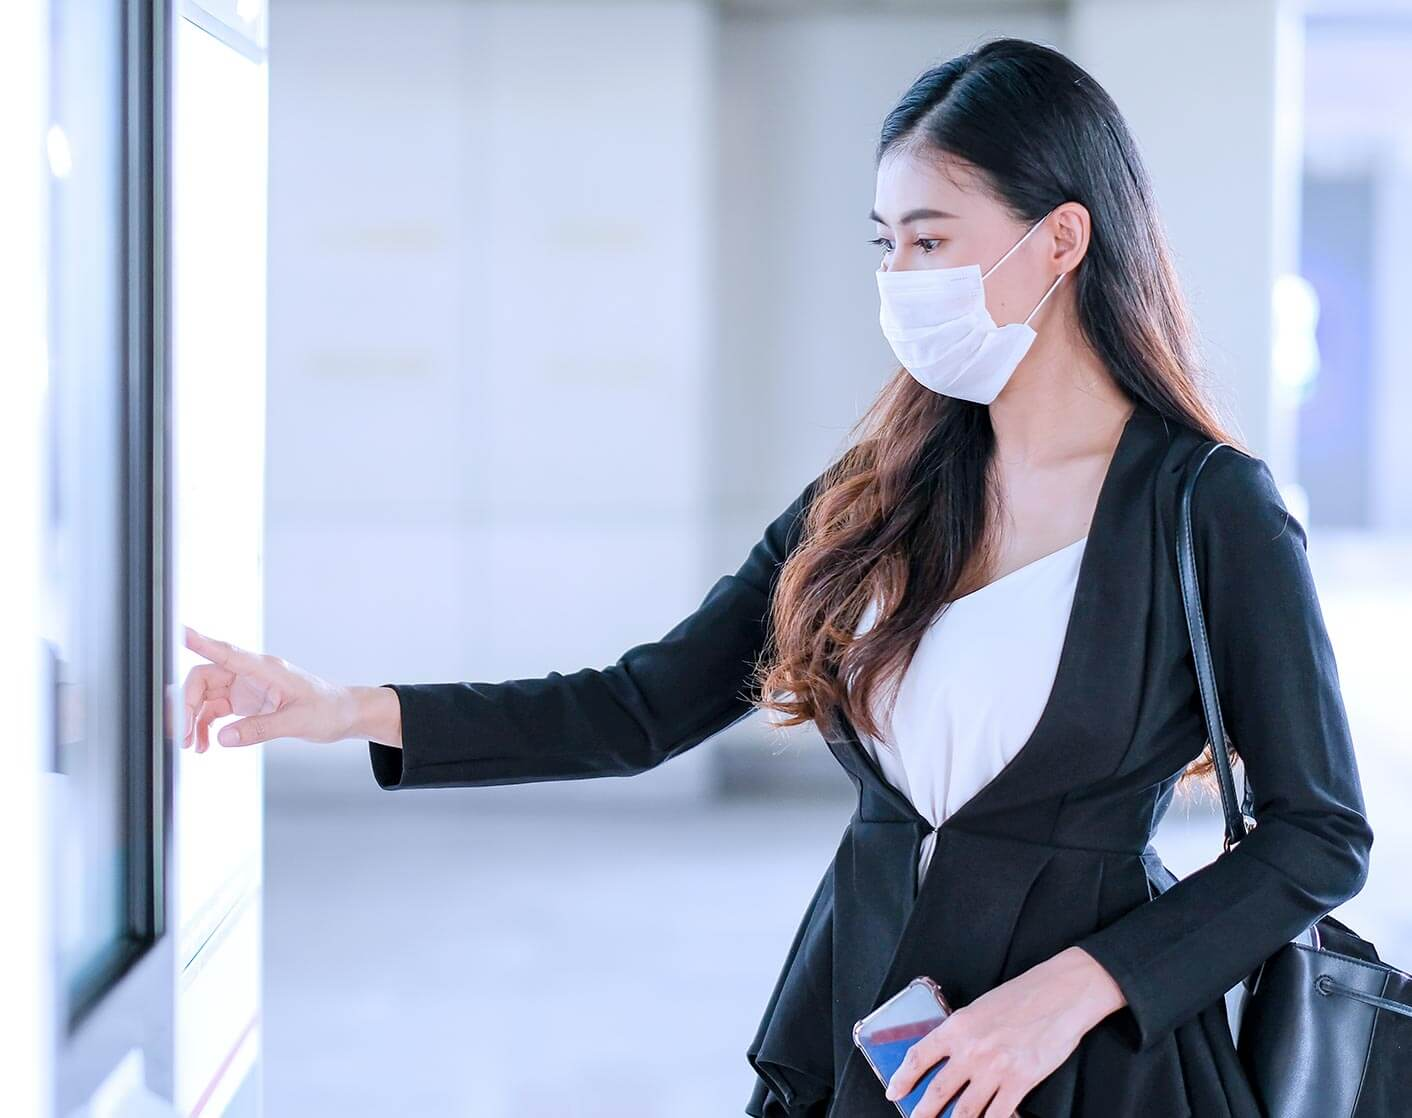 Woman with protective face mask using a kiosk in a store